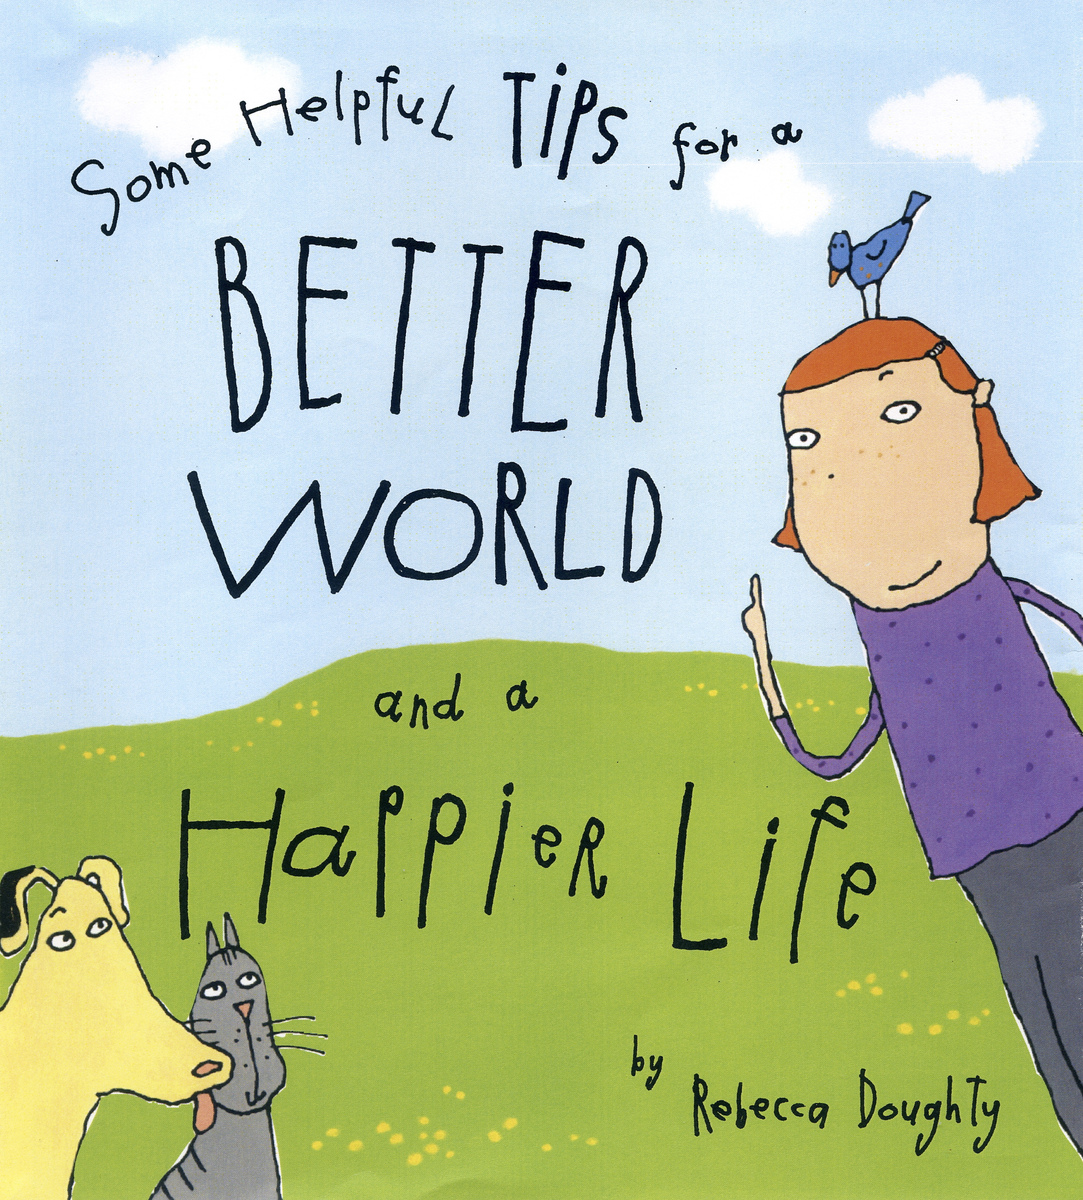 children's books Some Helpful Tips for a Better World and a Happier Life